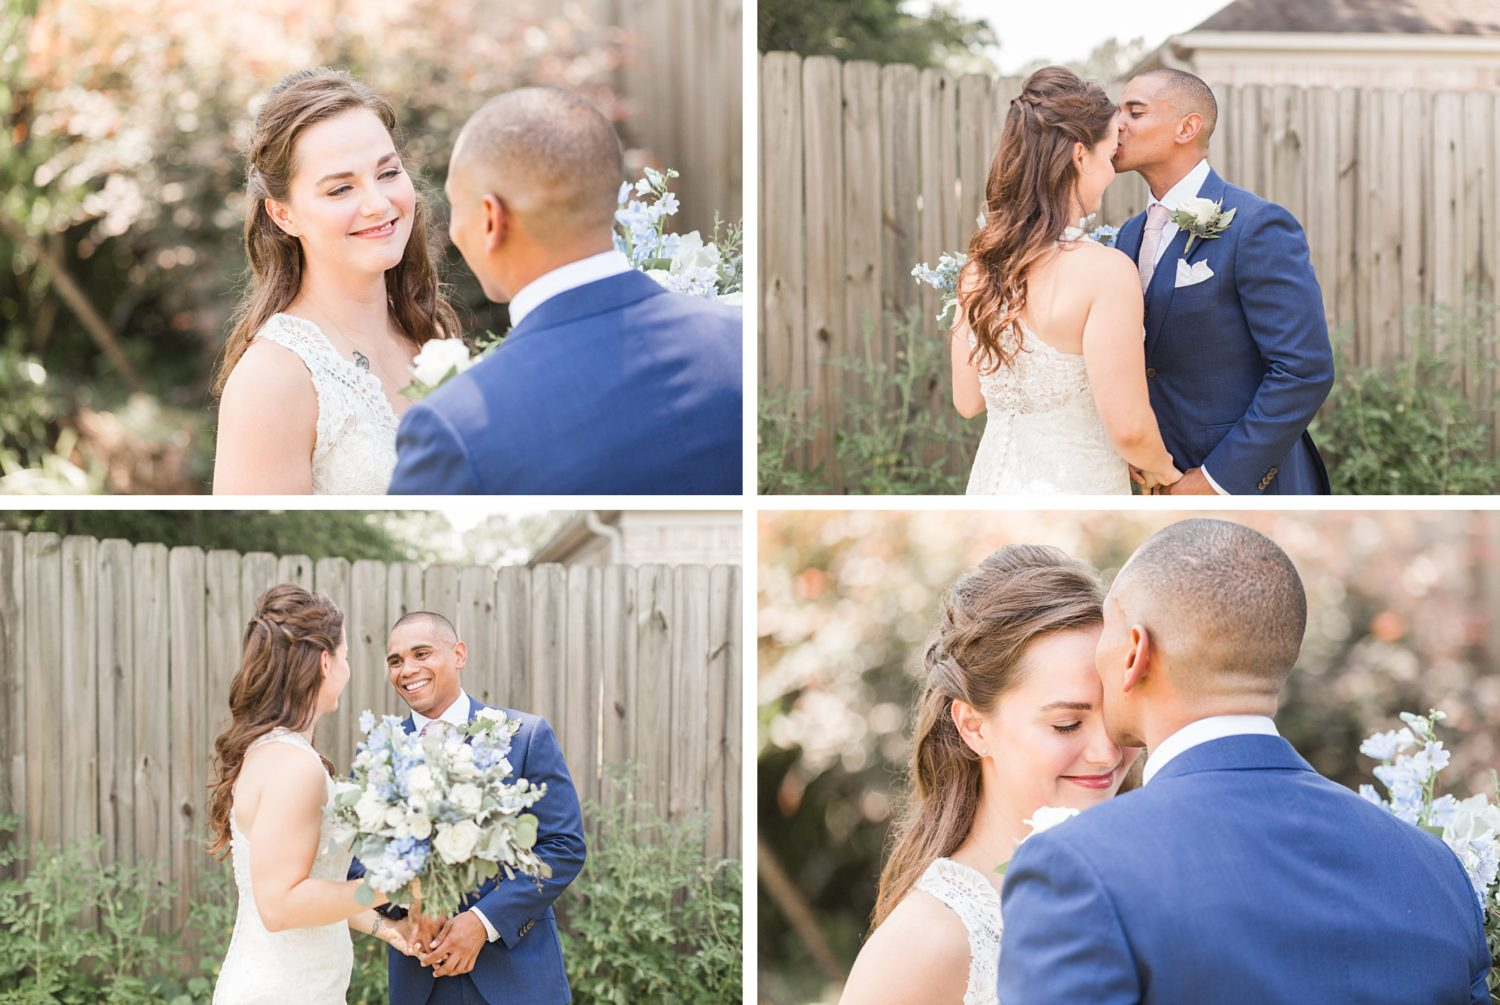 Summer July Fourth Intimate Wedding in Mempis